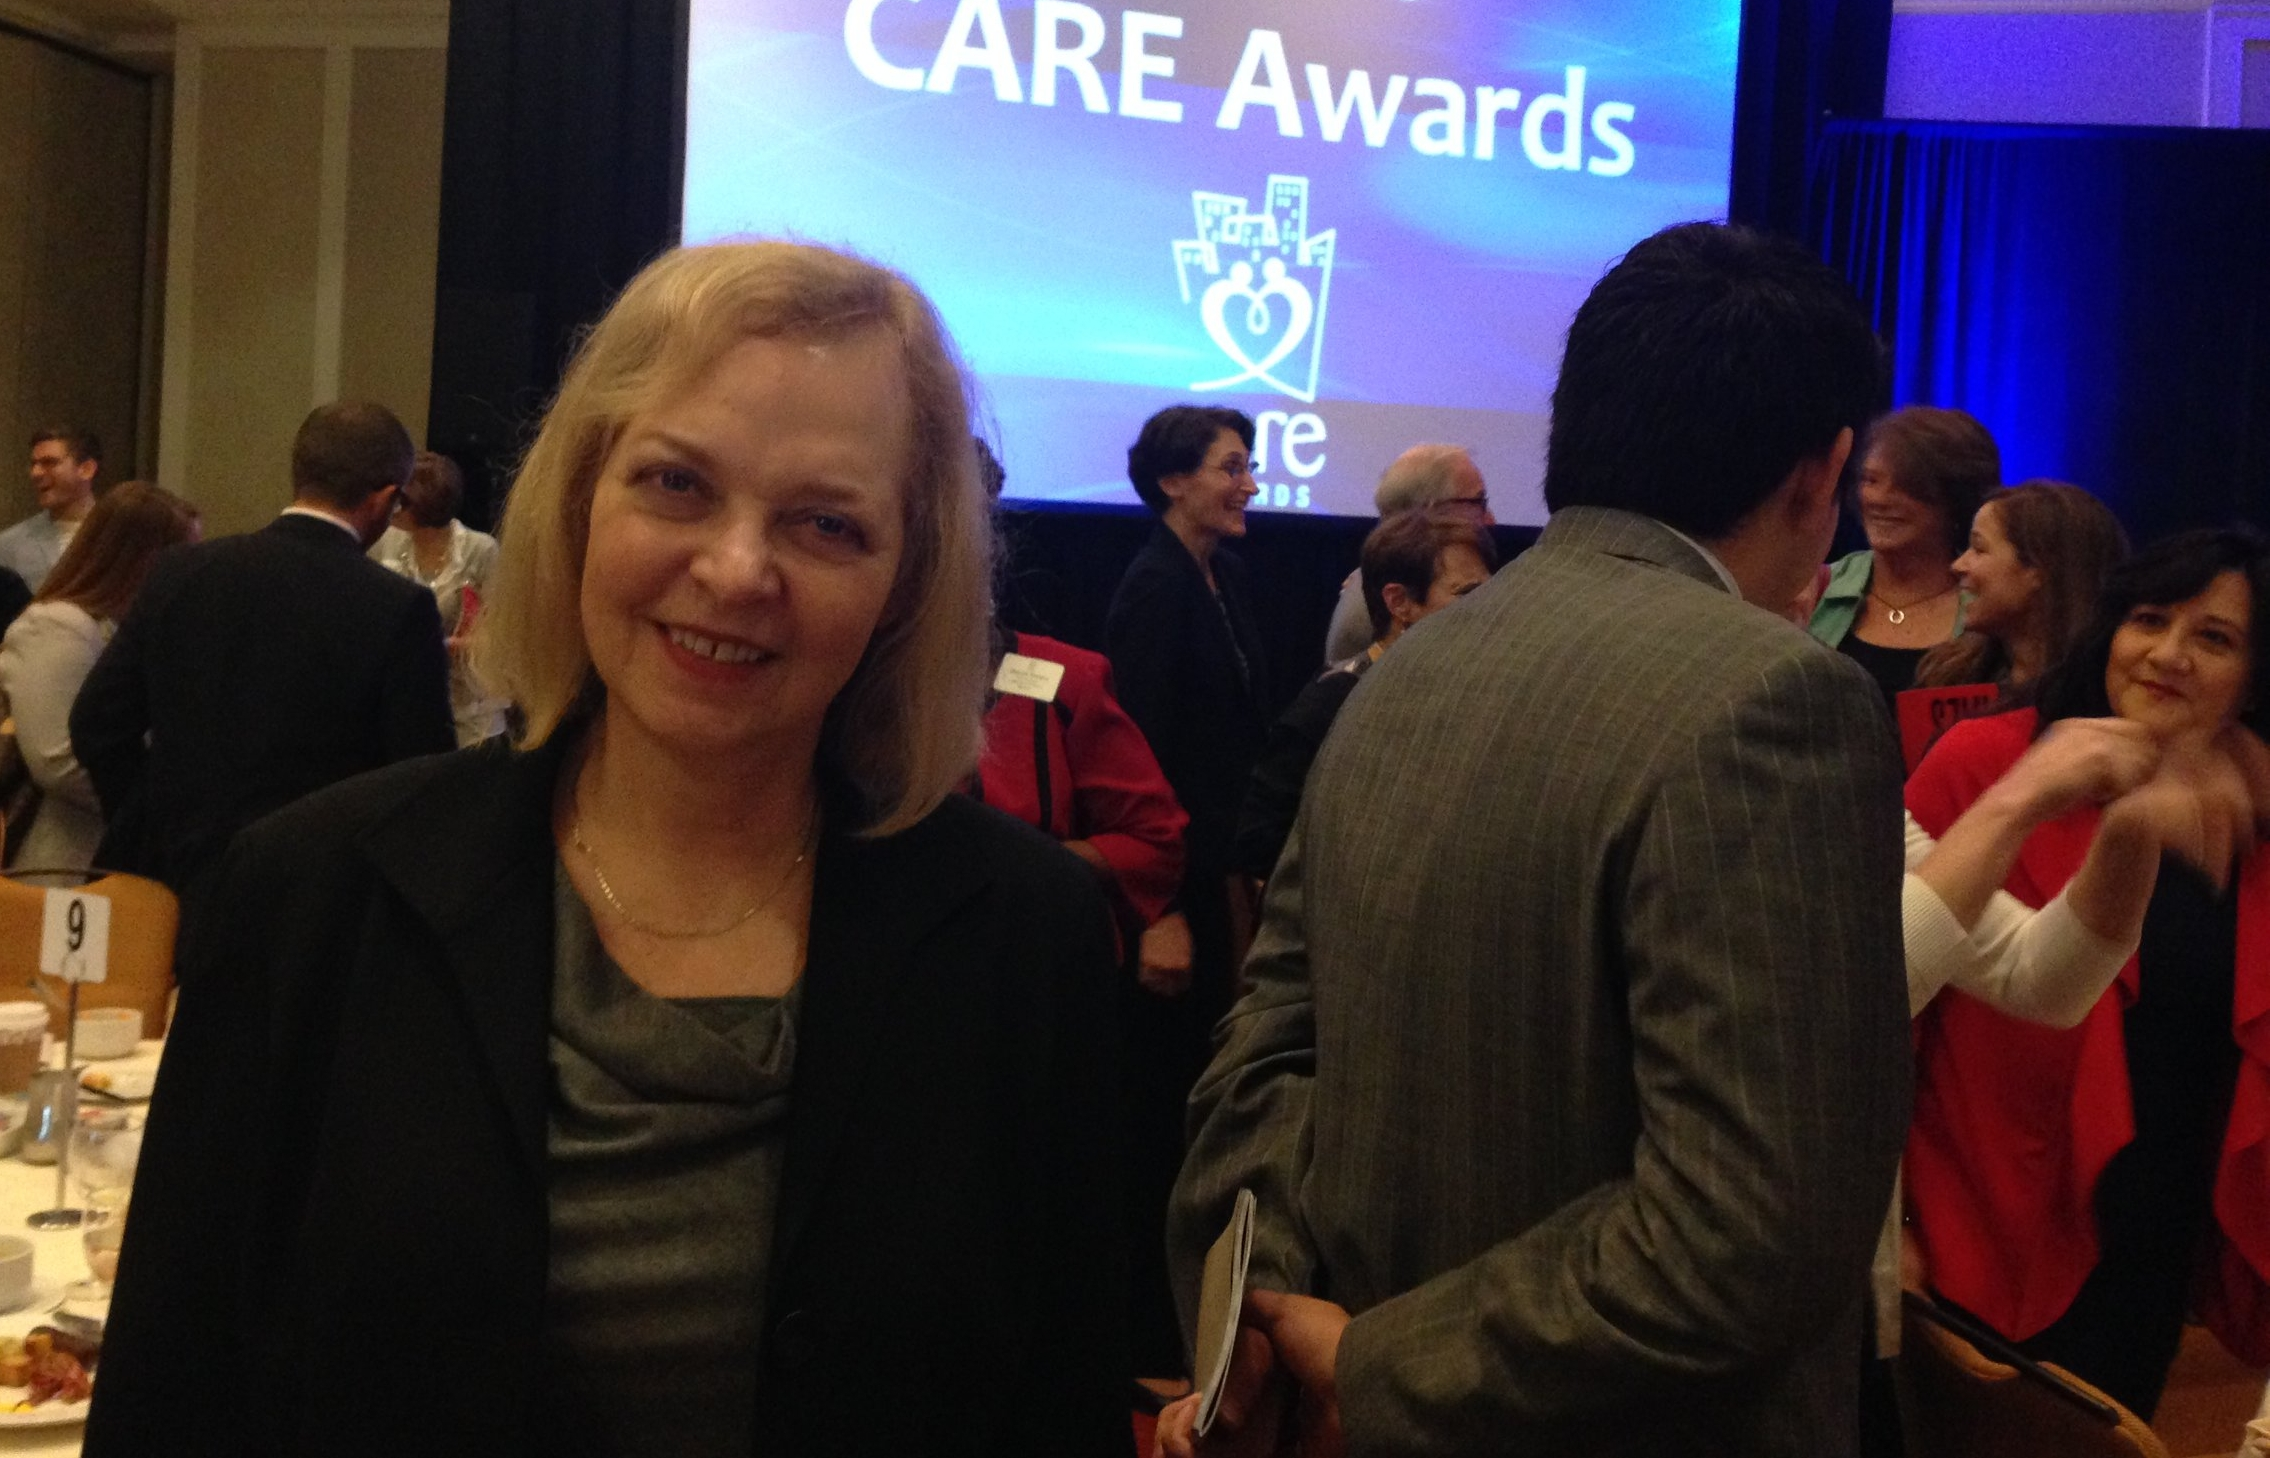 Giving Back - The Did Ya Notice? Project sponsors the Northern Virginia CARE Awards (Companies As Responsive Employers) for companies that are family friendly and give back to the community.